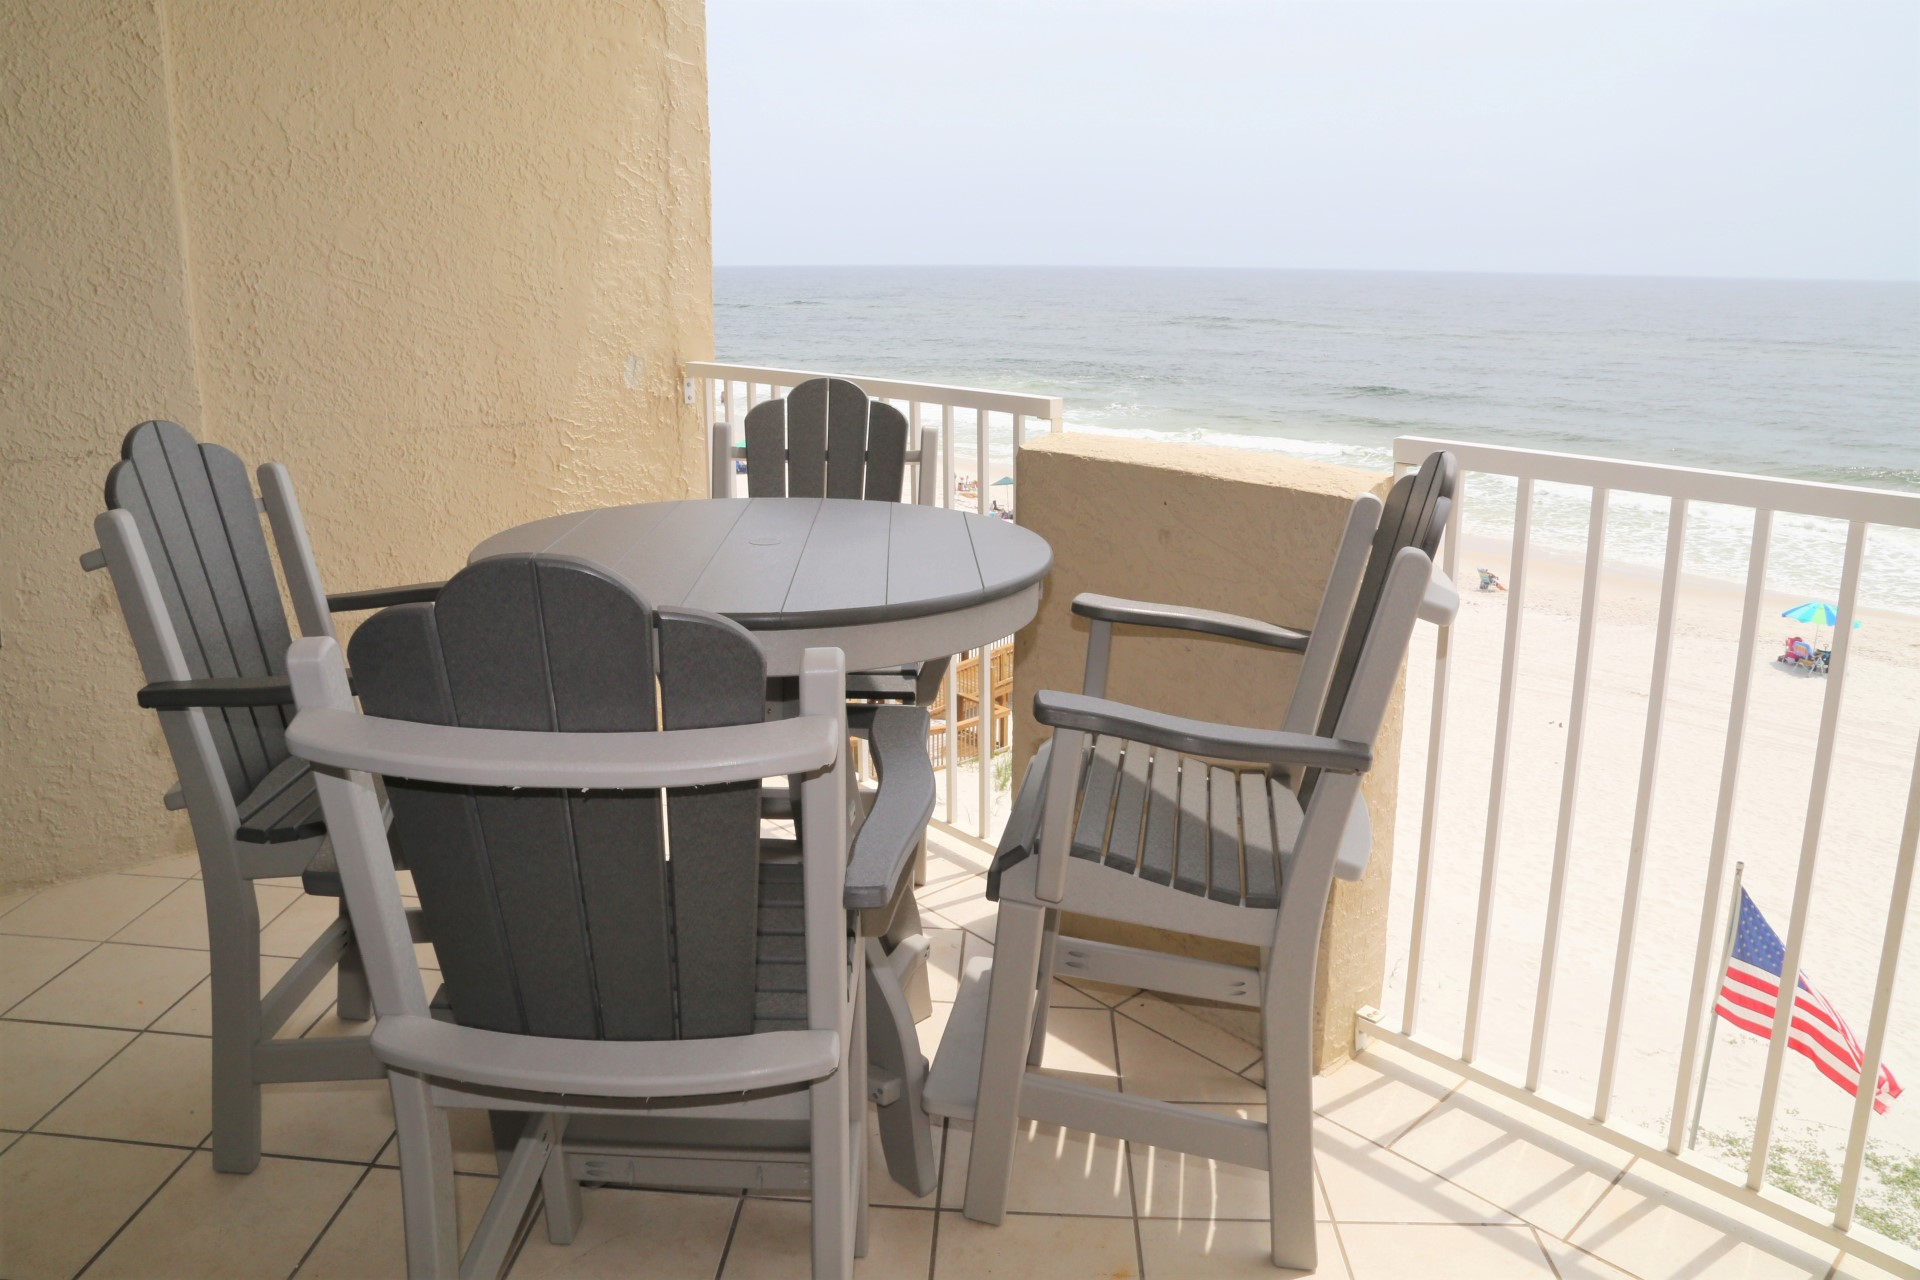 Ease onto your private balcony, which includes table